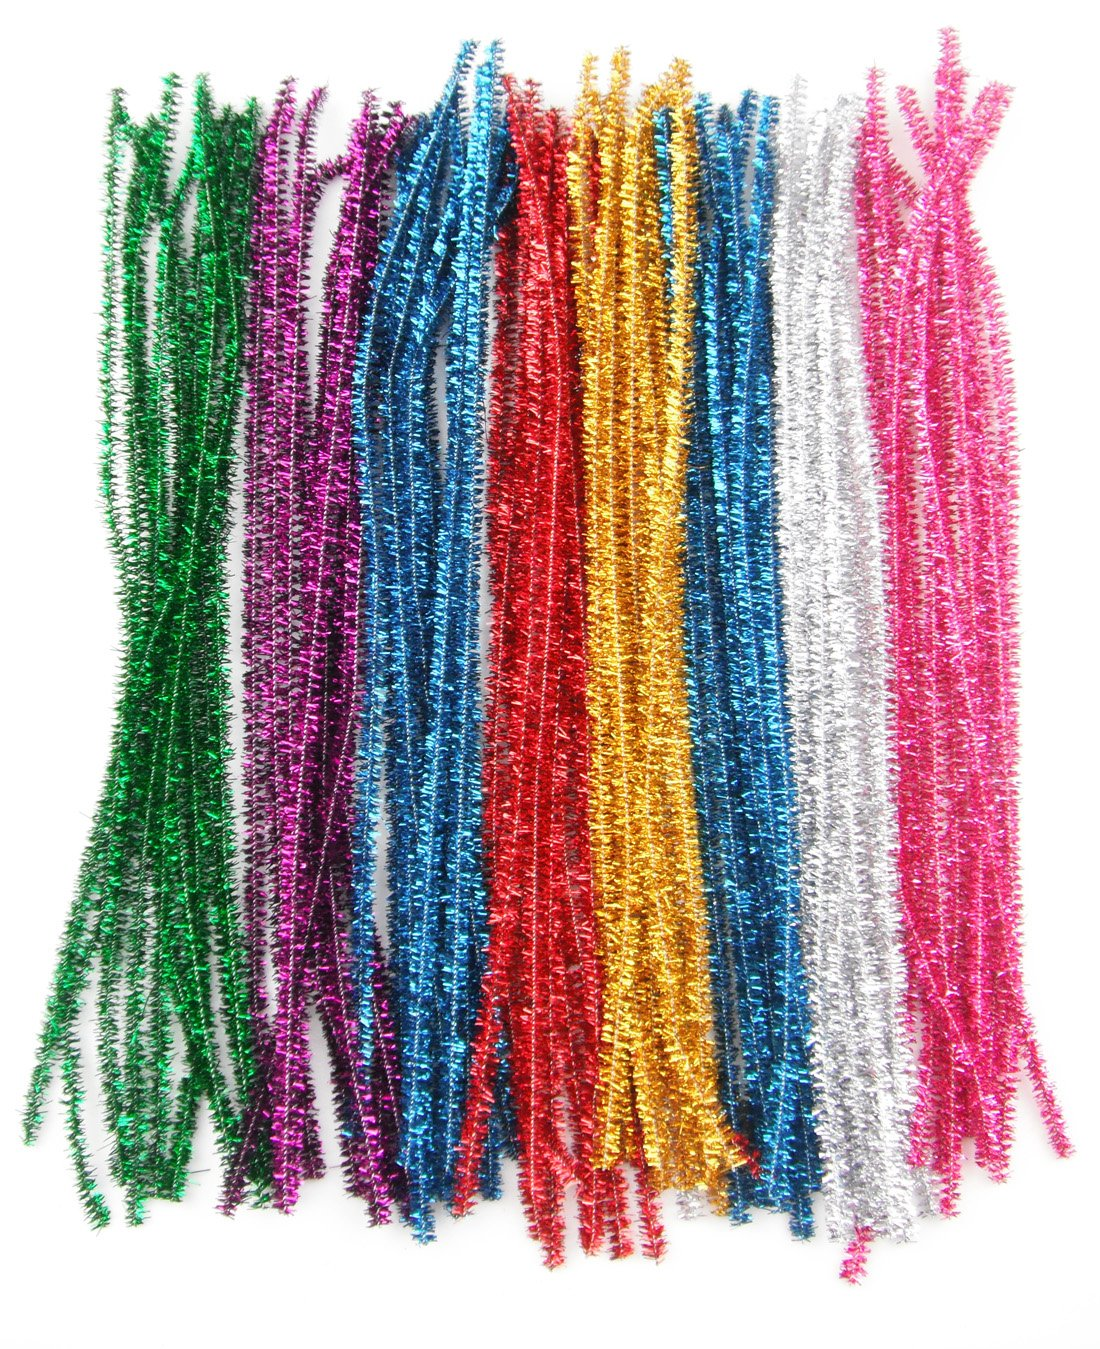 ALL in ONE 100pcs Mixed Color Glitter Sparkle Pipe Cleaners Tinsel Stems 6mm 12-inch